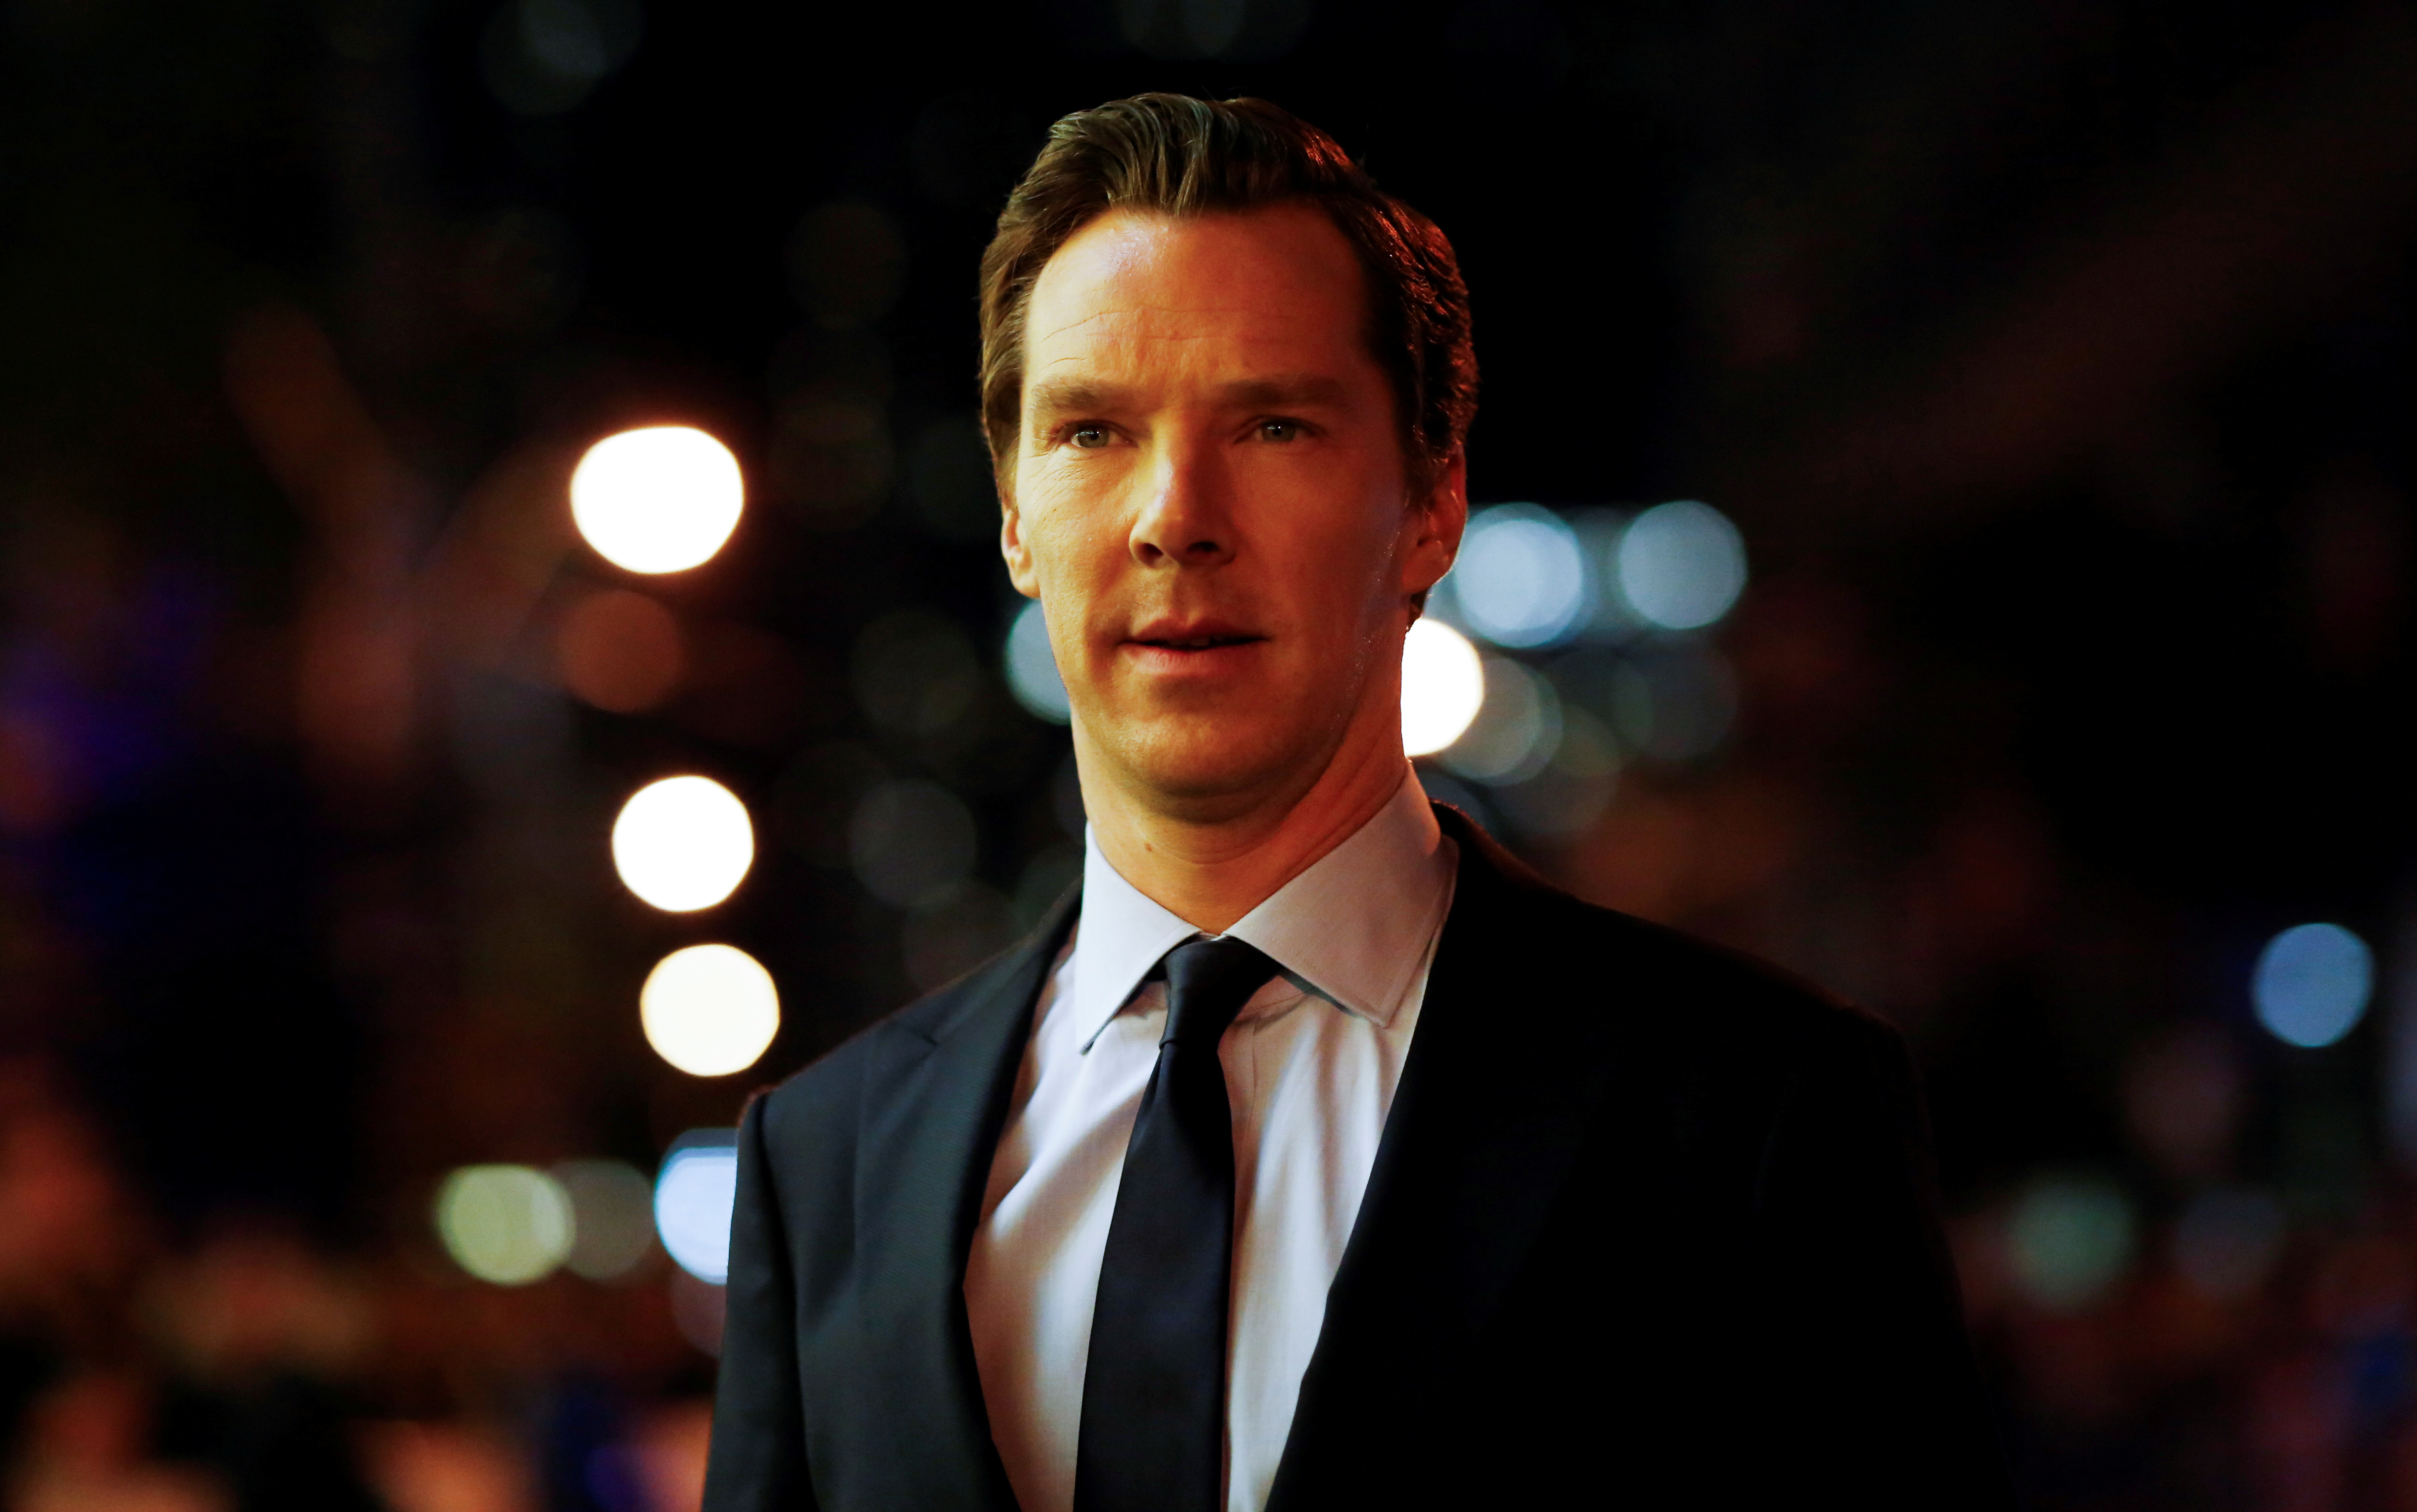 Actor Benedict Cumberbatch arrives on the red carpet for the film